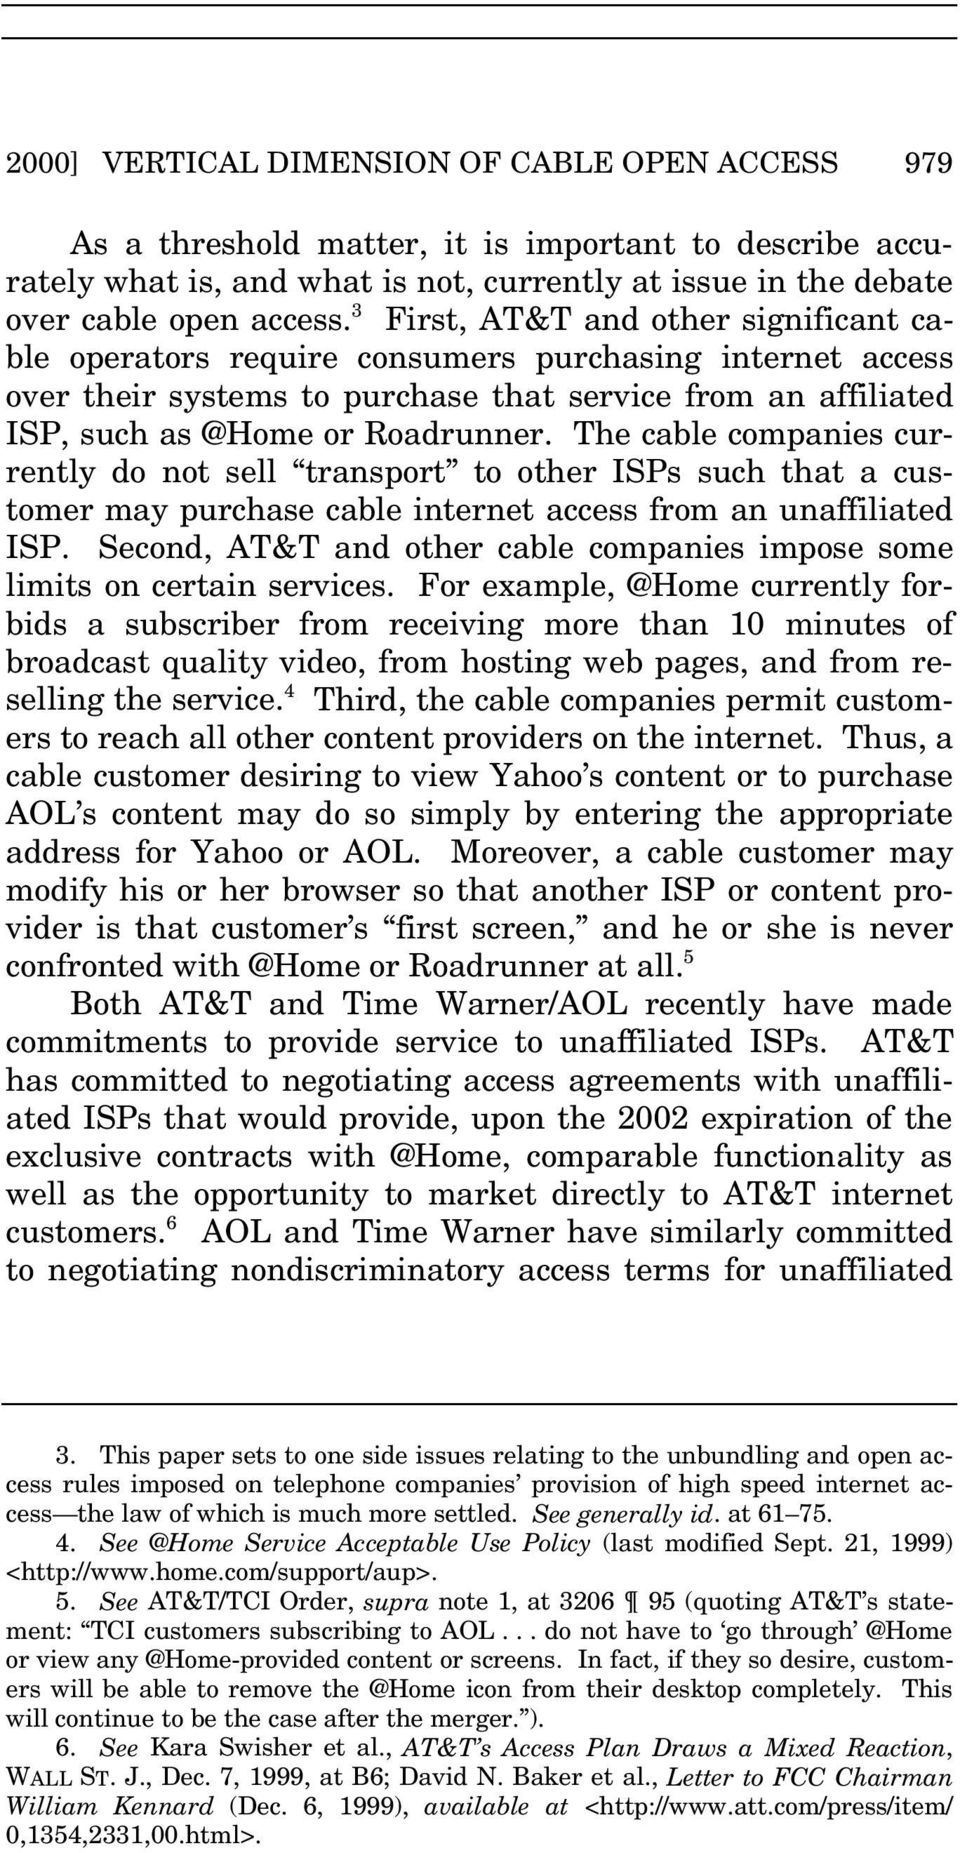 The cable companies currently do not sell transport to other ISPs such that a customer may purchase cable internet access from an unaffiliated ISP.